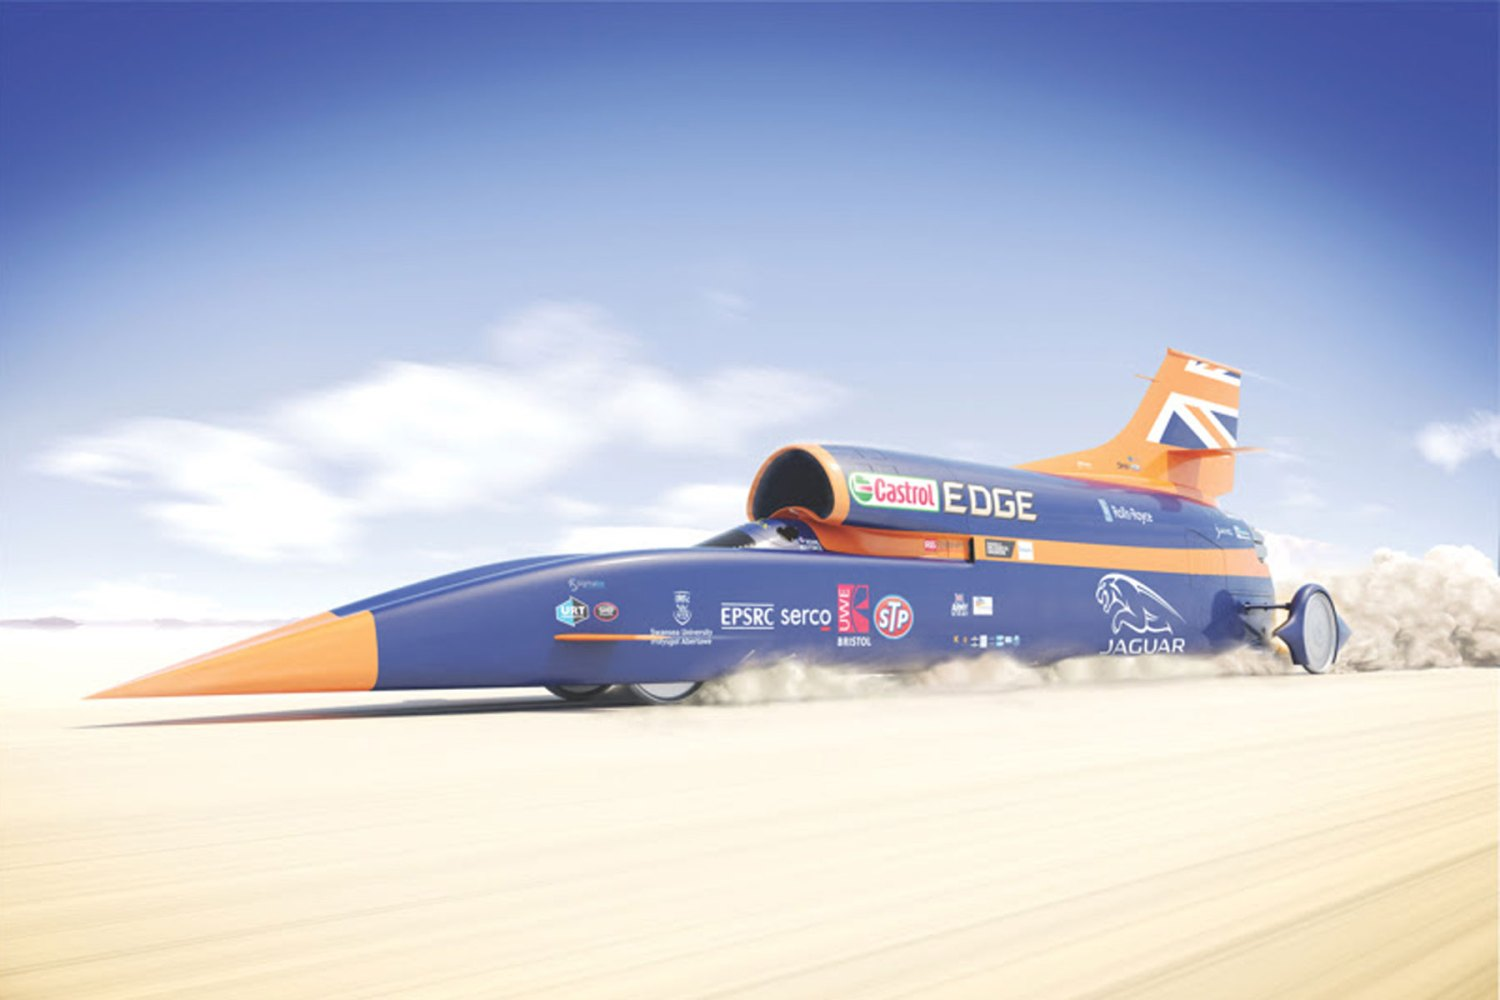 Bloodhound to be tested at 200mph in November... in Cornwall